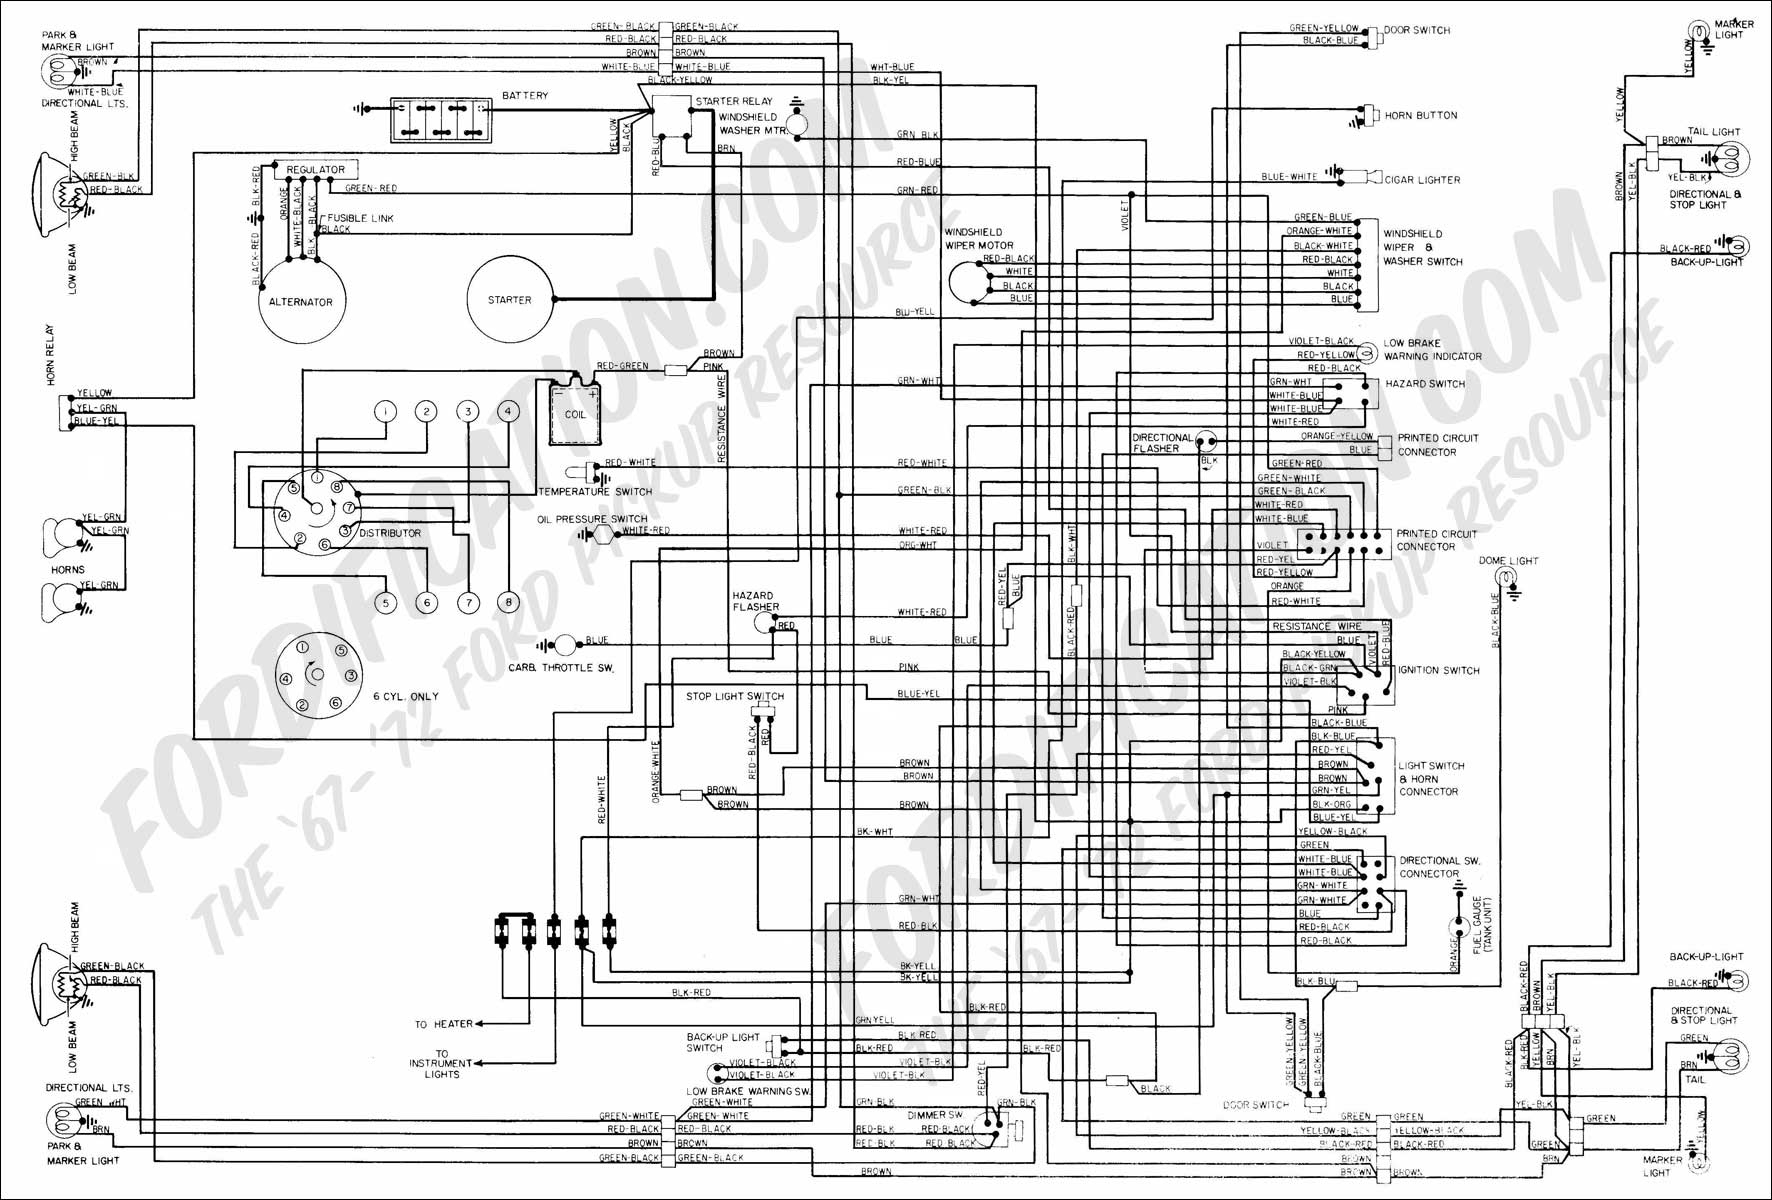 1972 Mustang Wiring Diagram - Wiring Diagrams Hubs - 1997 Ford F150 Radio Wiring Diagram